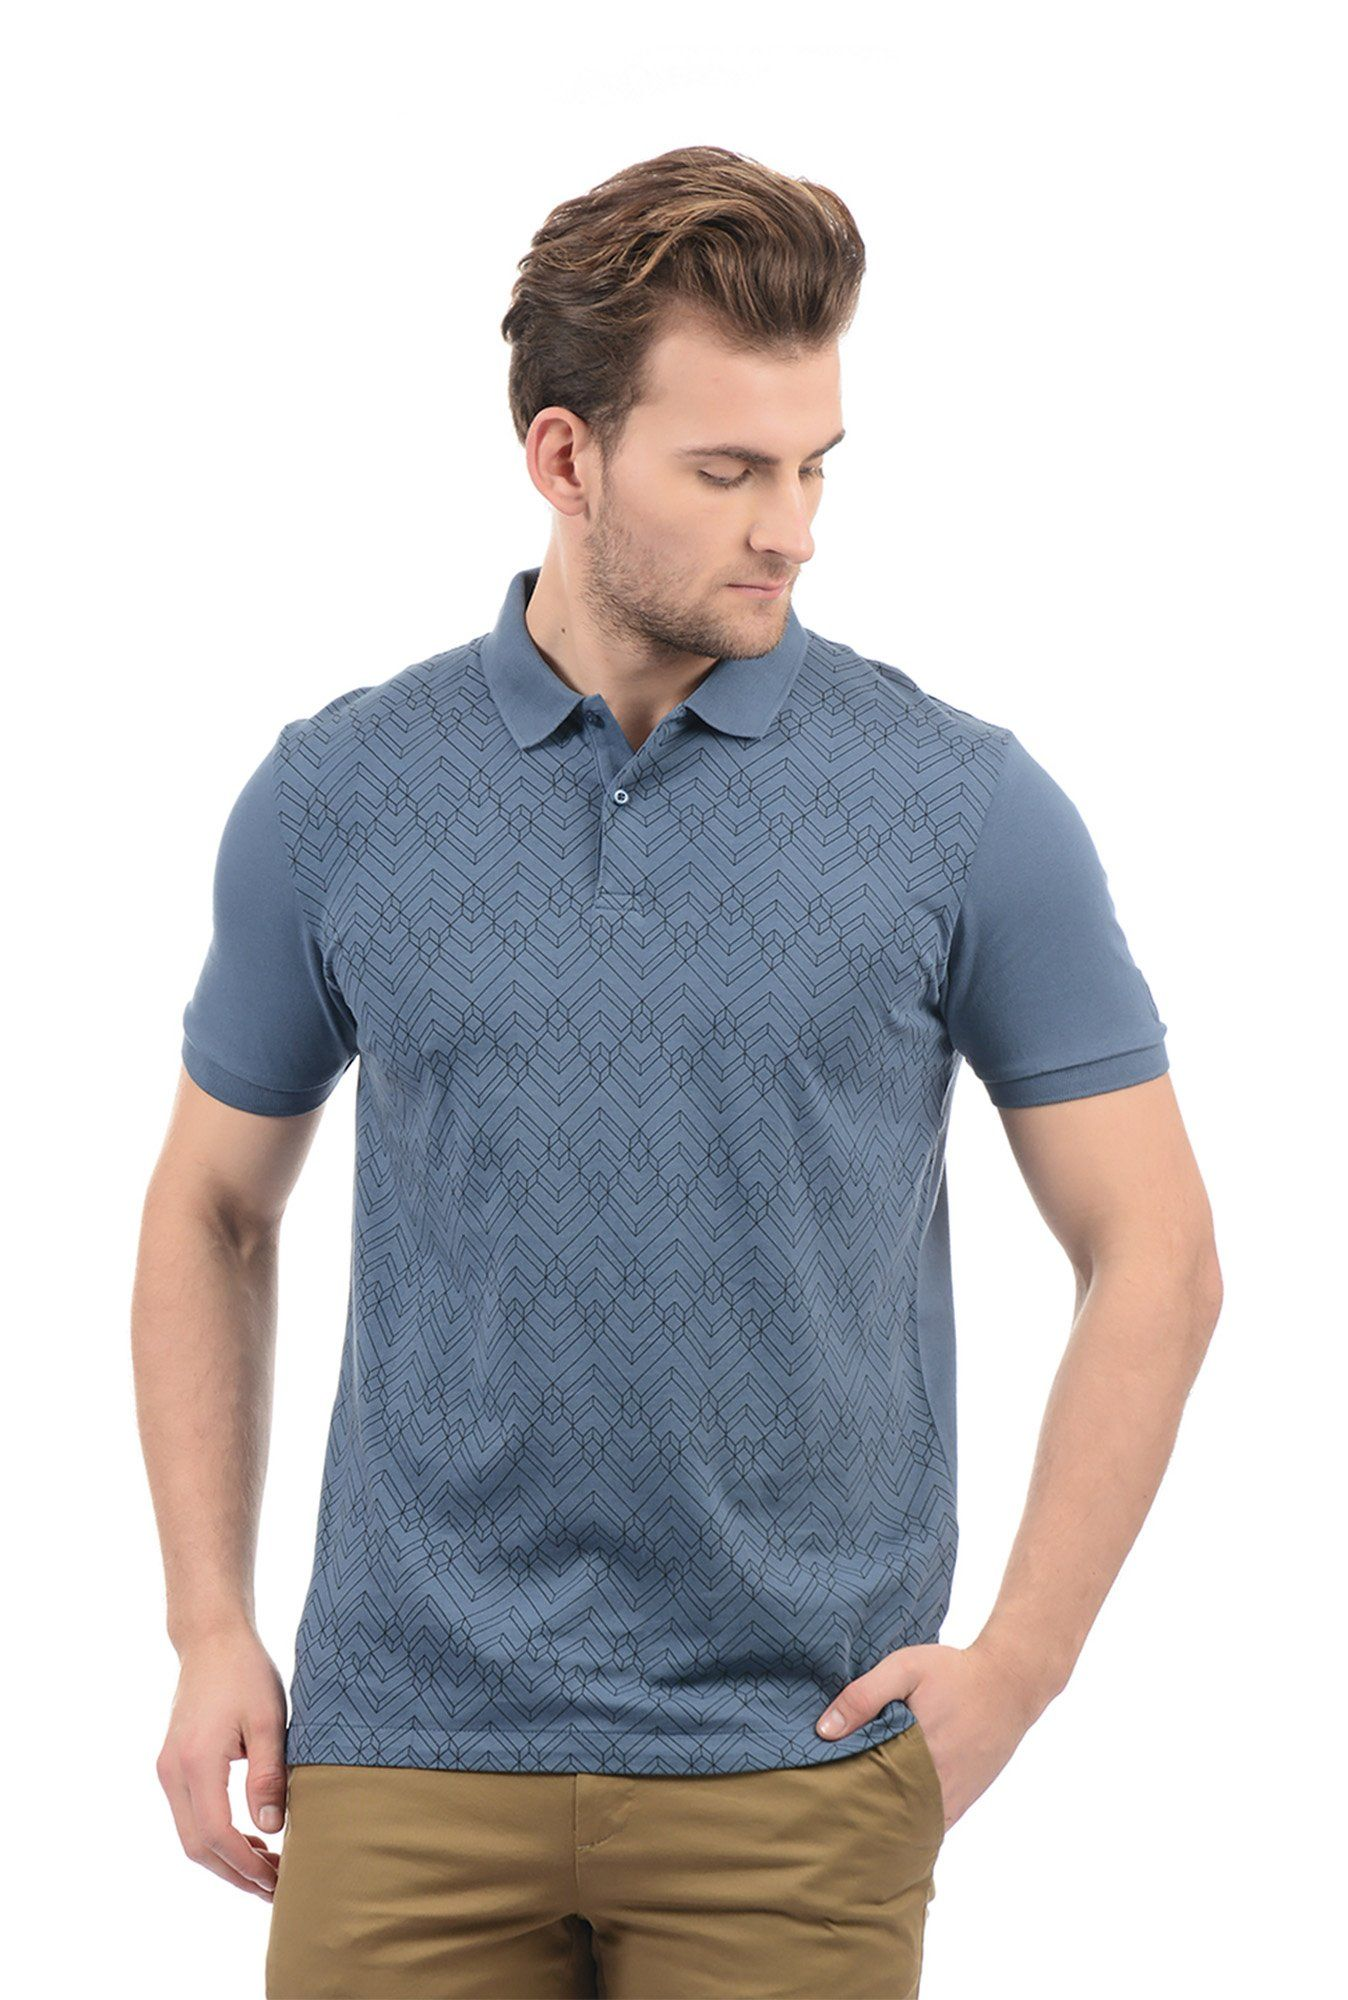 c6033f3e Arrow New York Steel Blue Regular Fit Polo T-shirt - | 749.00 ...